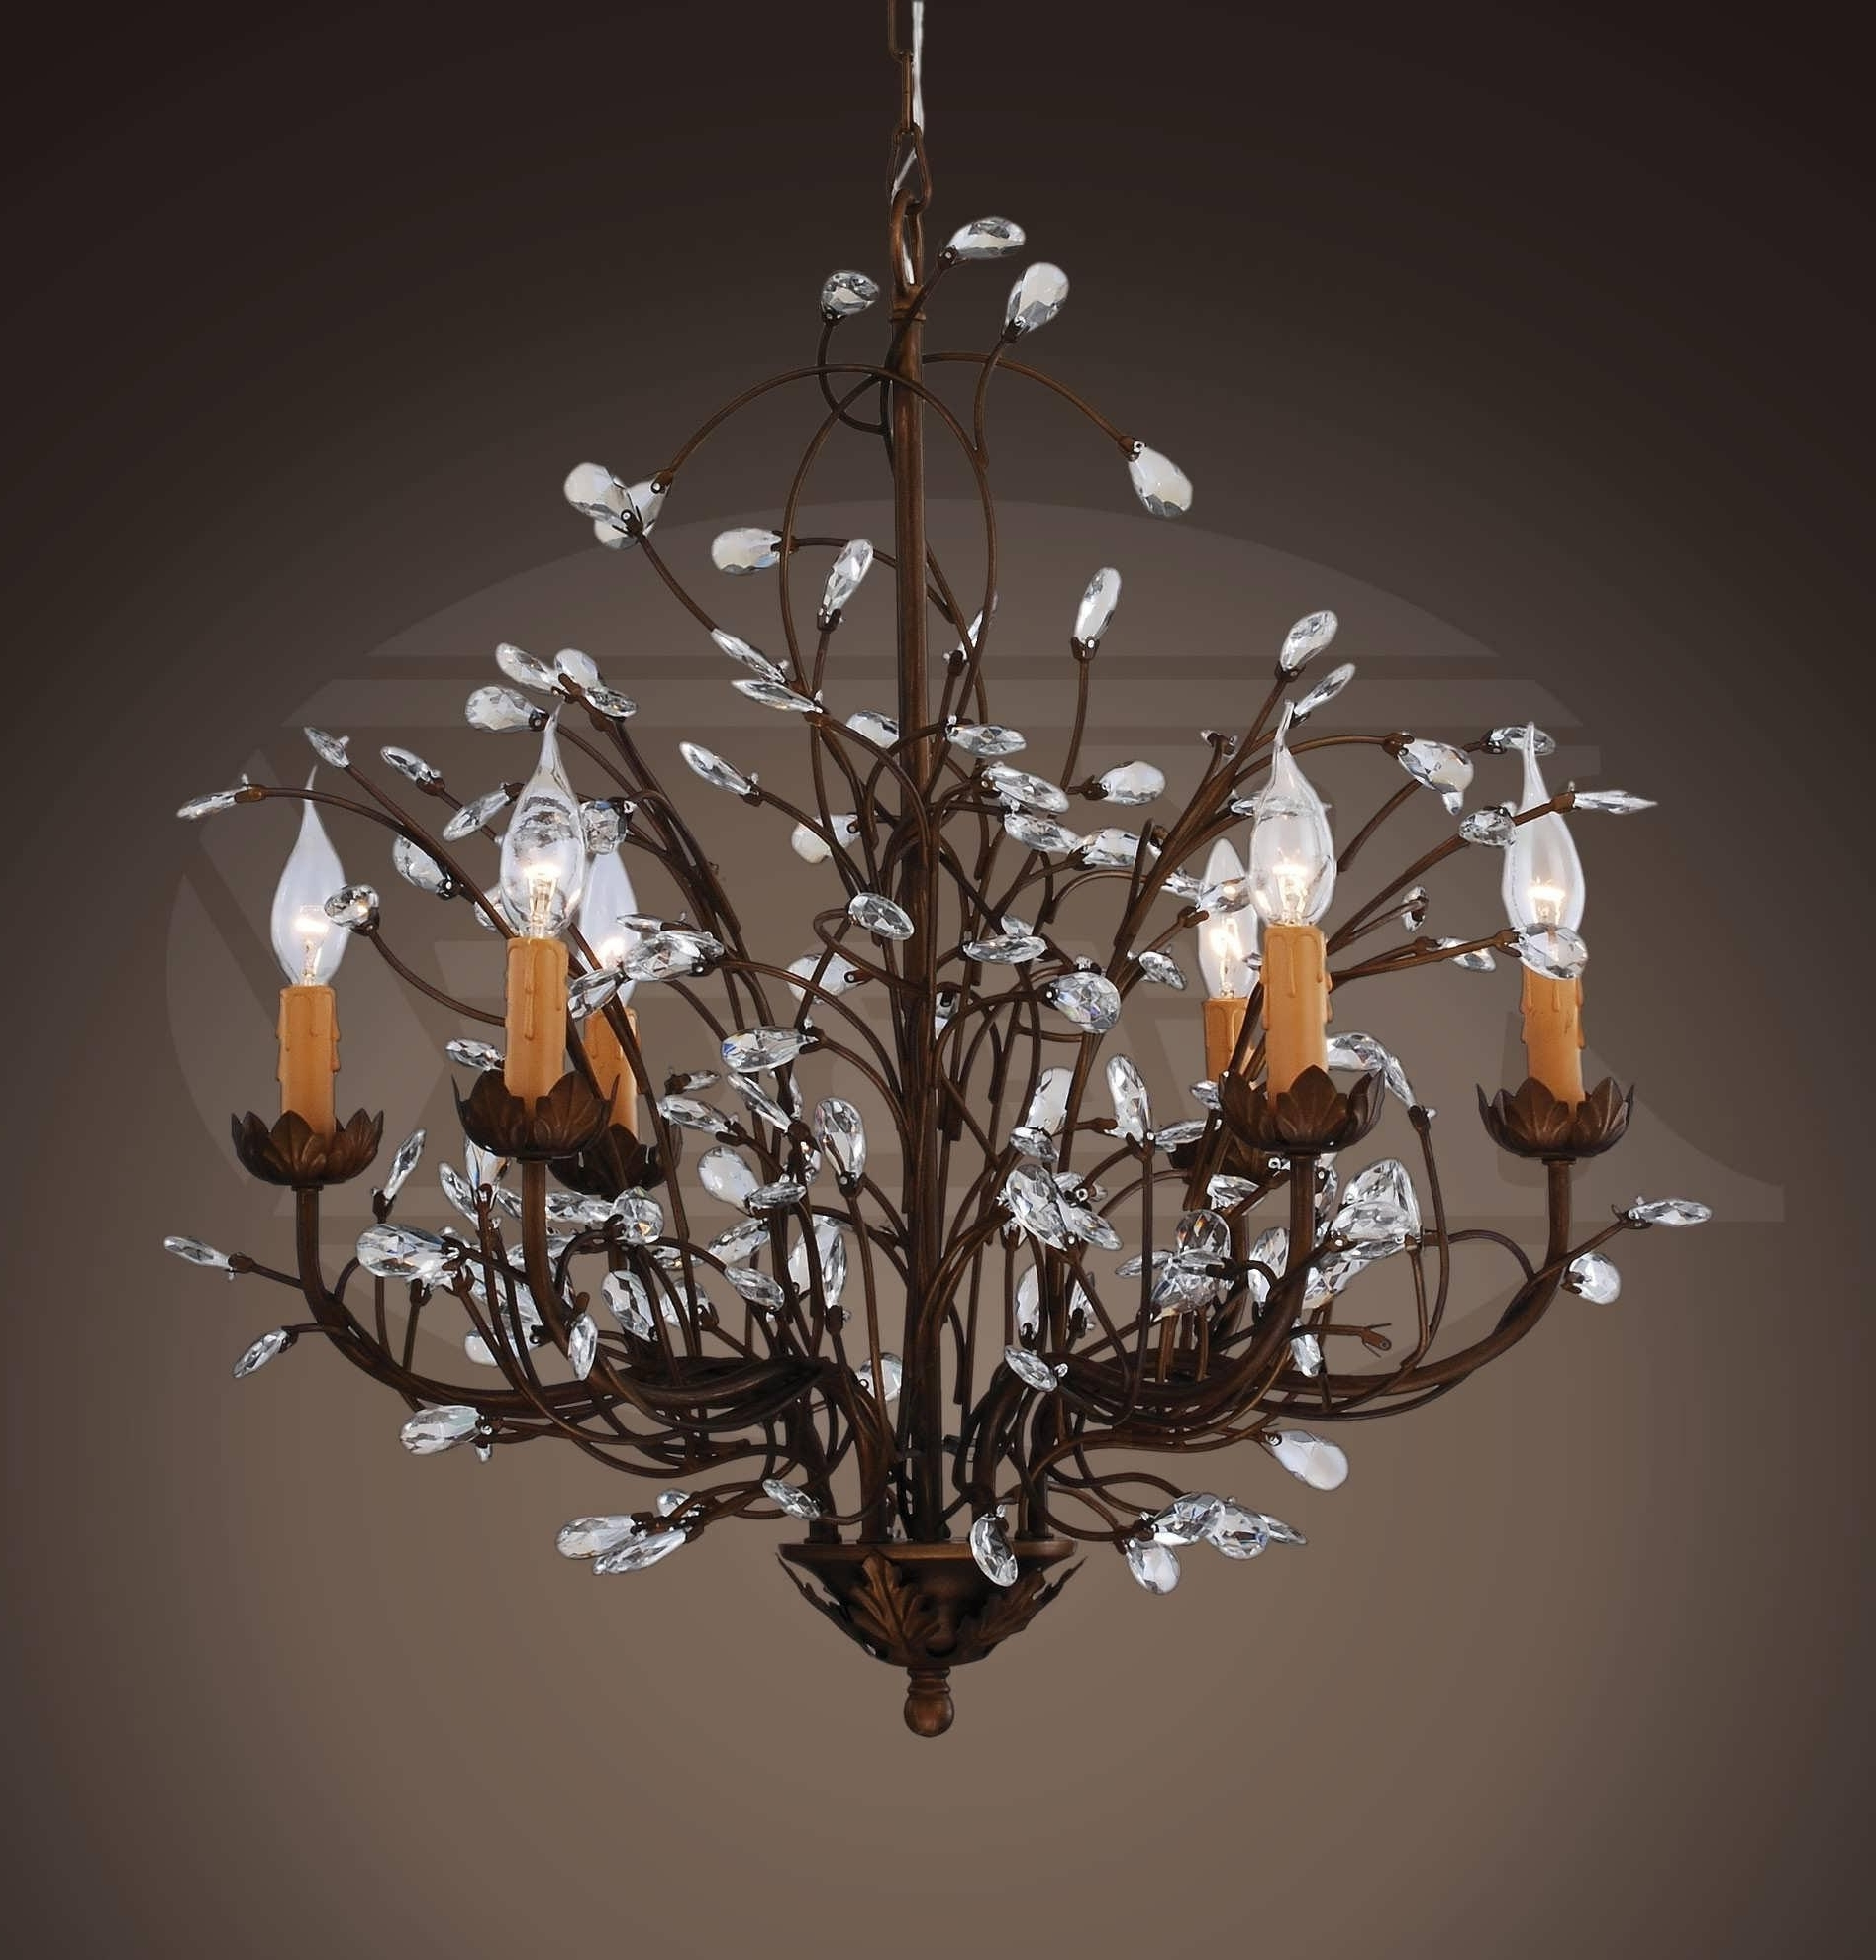 Large Contemporary Chandeliers For Preferred Chandeliers : Contemporary Chandelier Lighting Beautiful Chandeliers (View 20 of 20)